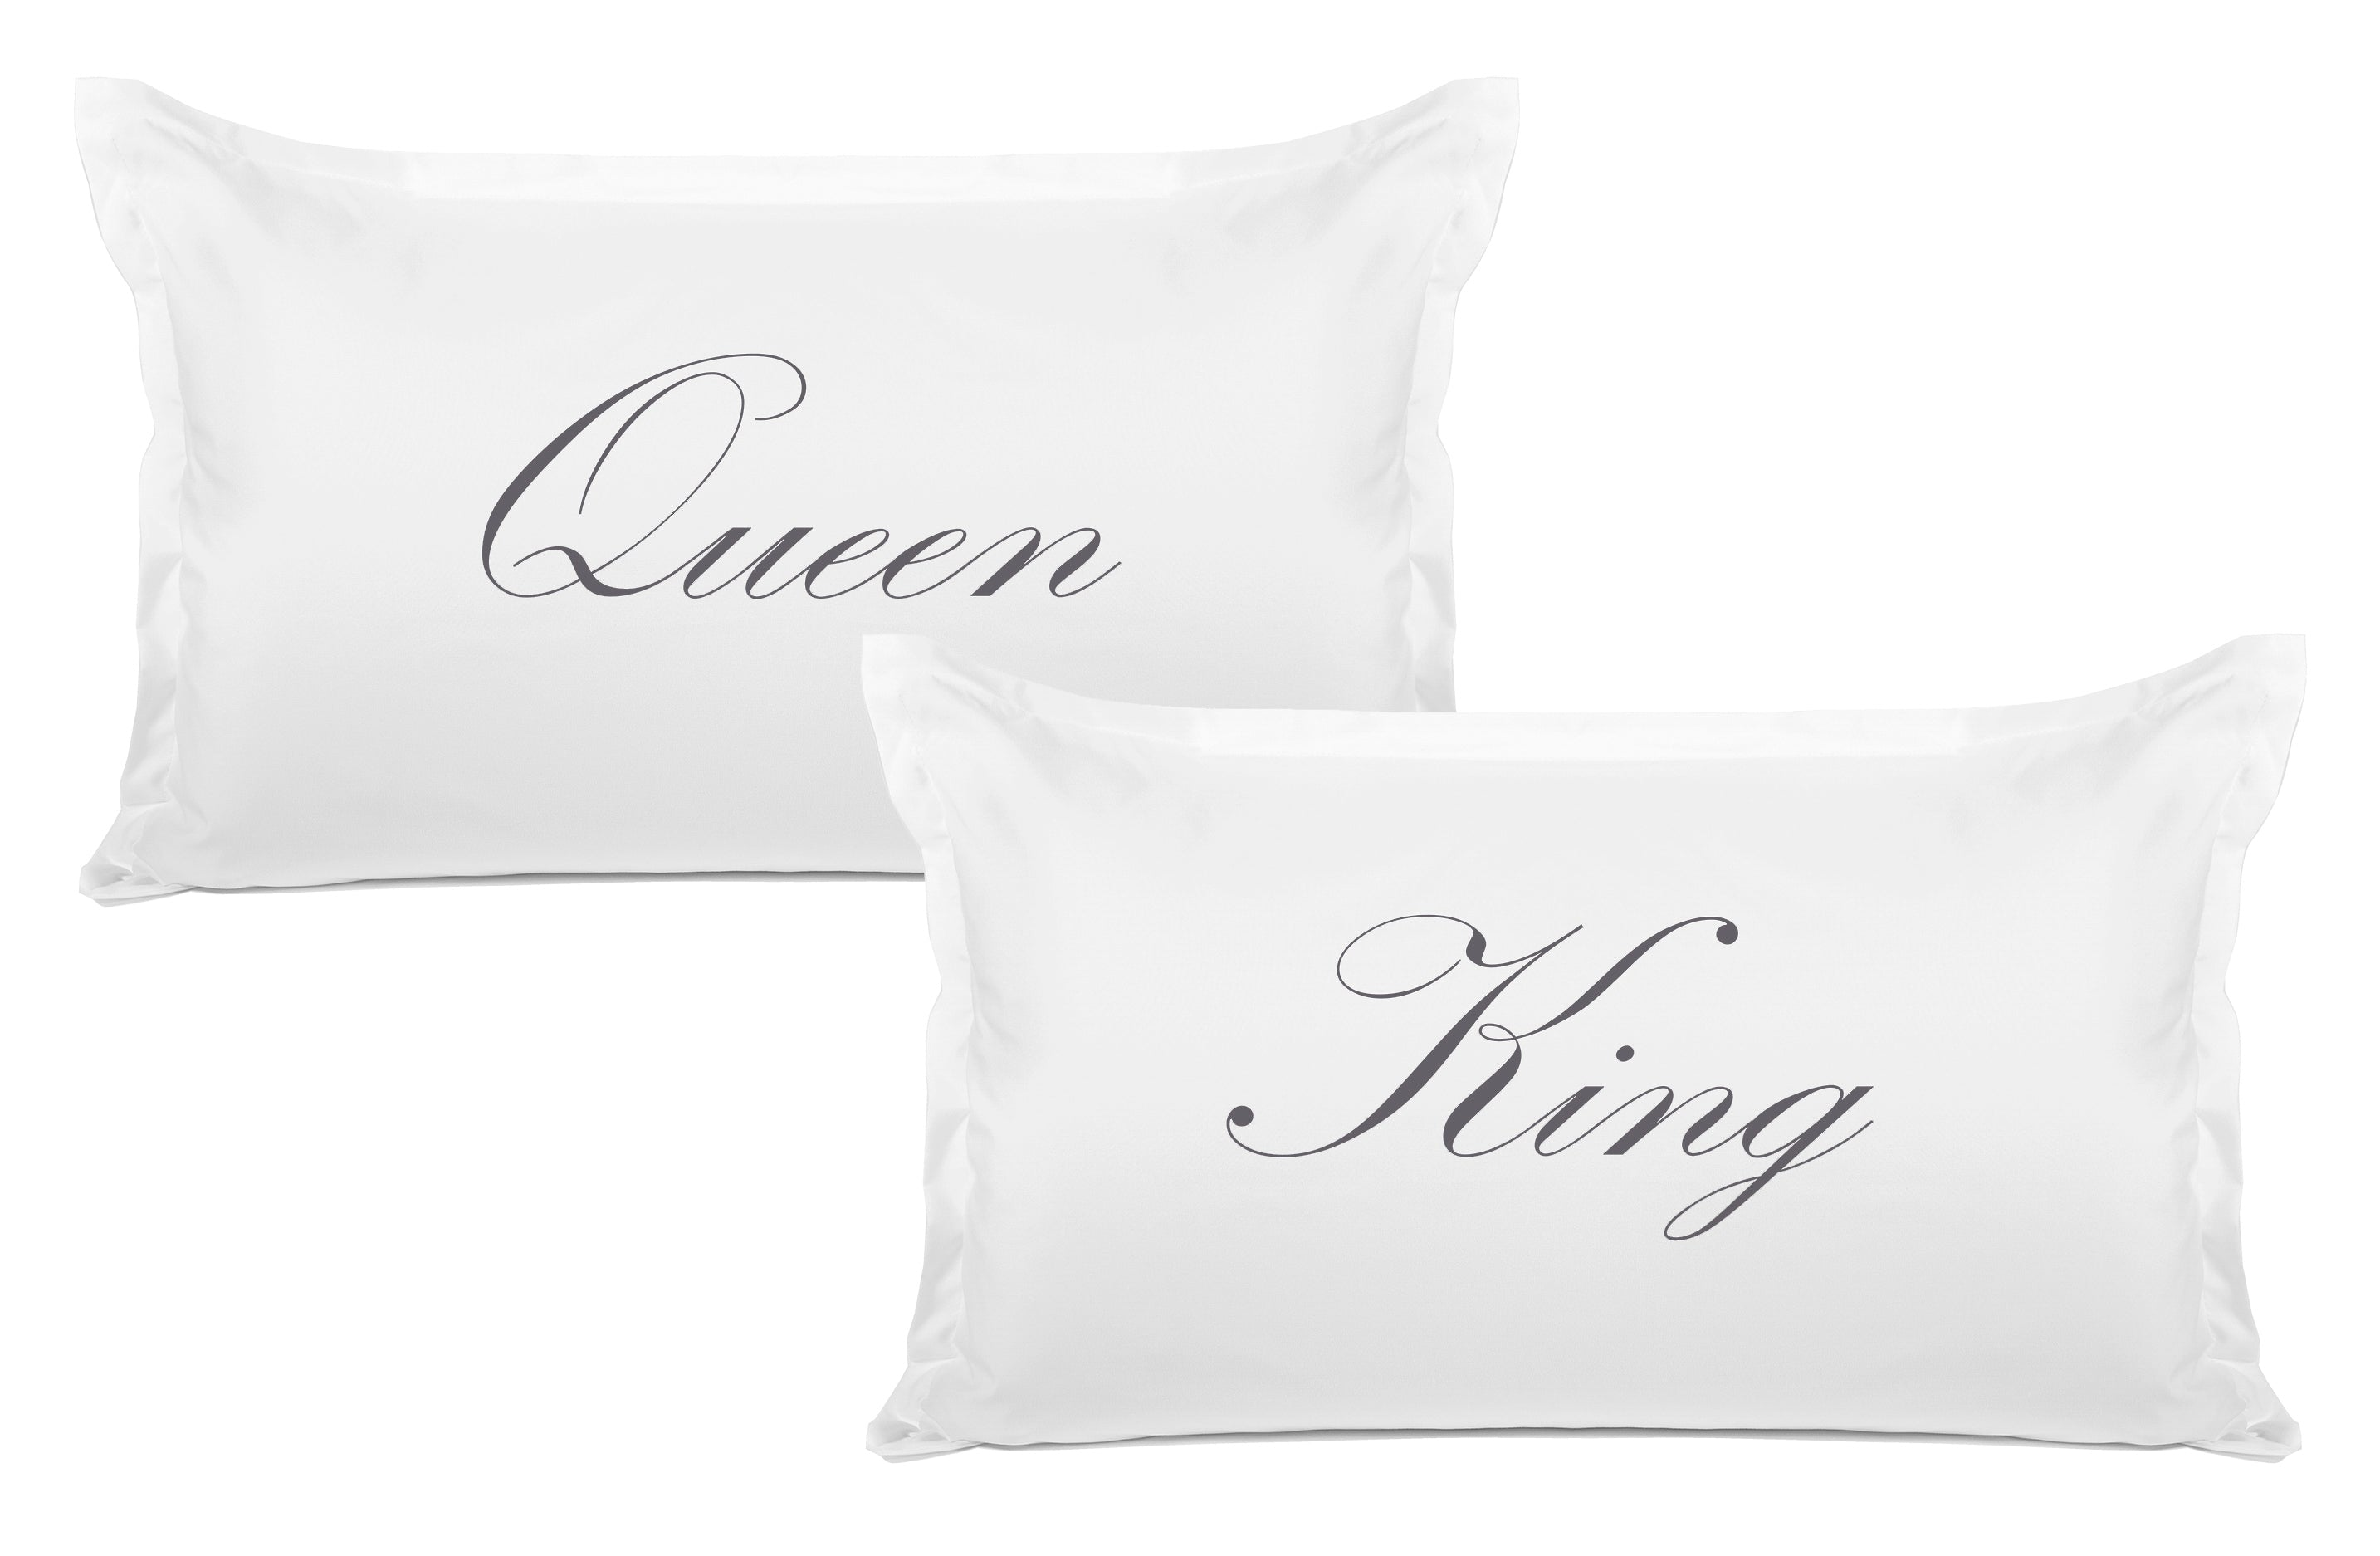 King, Queen pillow set Di Lewis bedroom decor